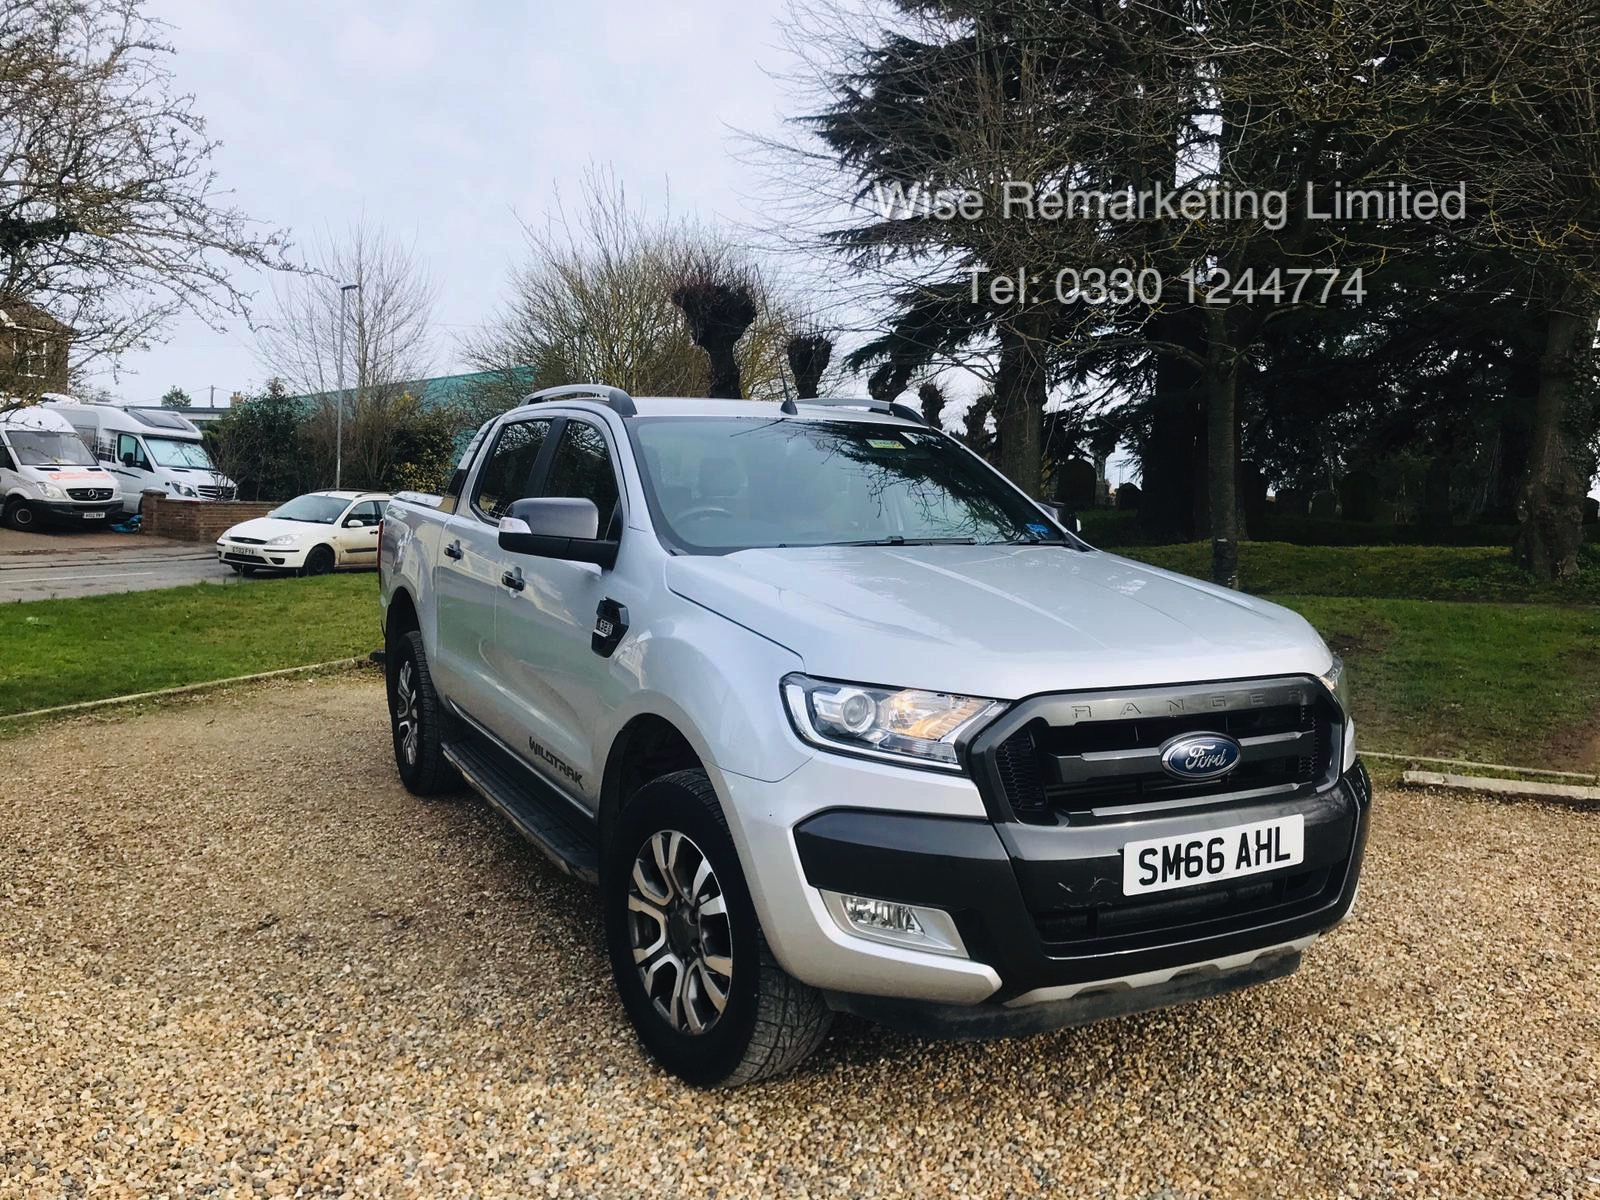 Ford Ranger 3.2 TDCI WILDTRAK - Auto - 2017 Model - 1 Former Keeper - 4x4 - TOP OF THE RANGE - Image 6 of 16